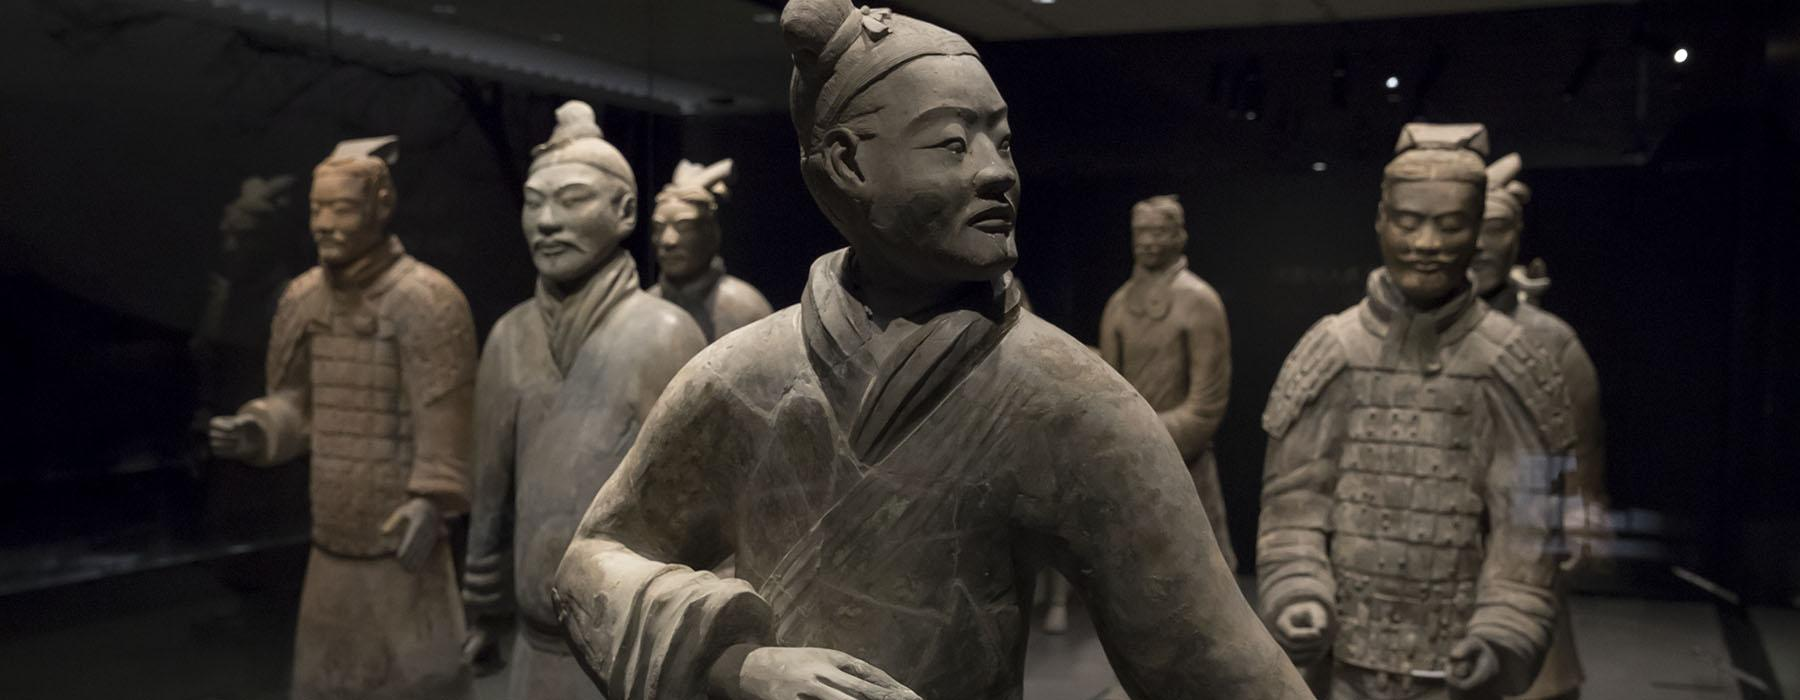 Armoured general, Qin dynasty (221-206 BCE), pottery. Photo by Qiu Ziyu, courtesy of Shaanxi History Museum. Emperor Qin Shihuang's Mausoleum Site Museum (002524)